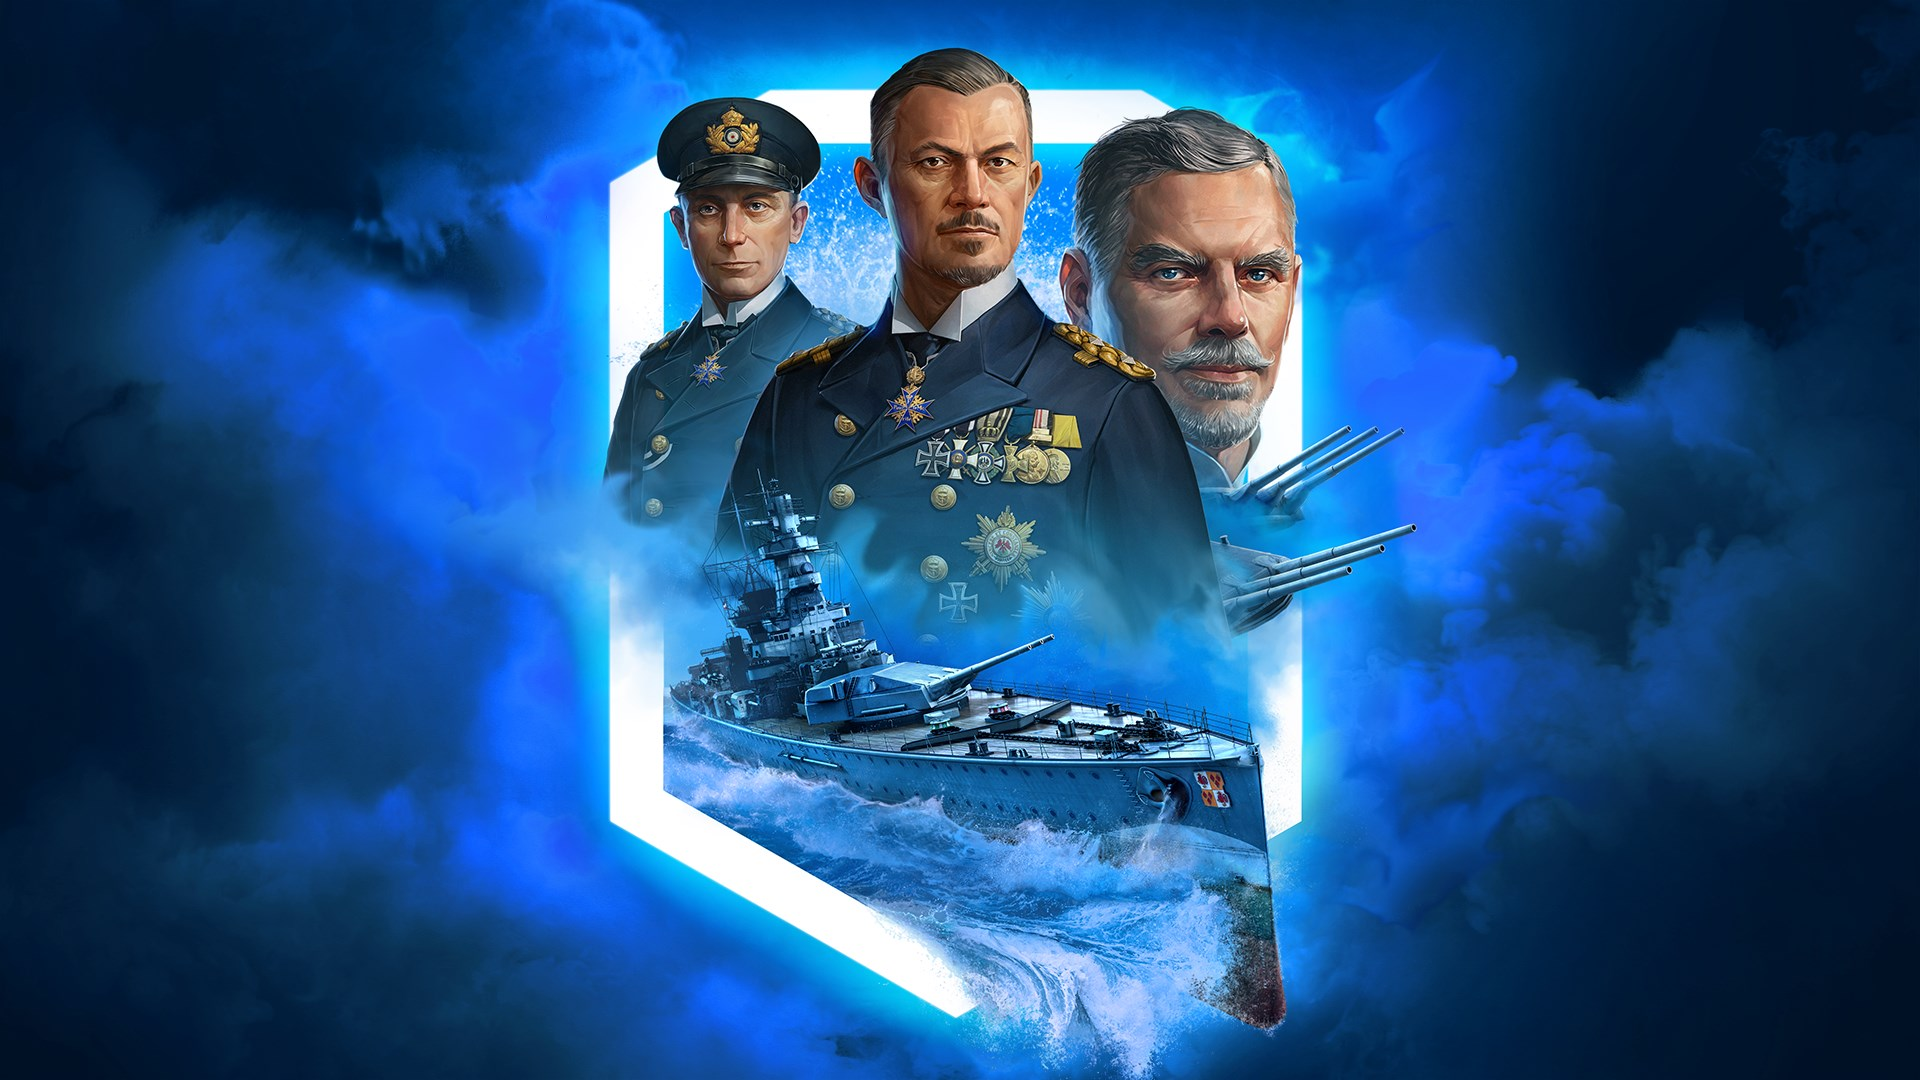 World of Warships: Legends - Pocket Battleship